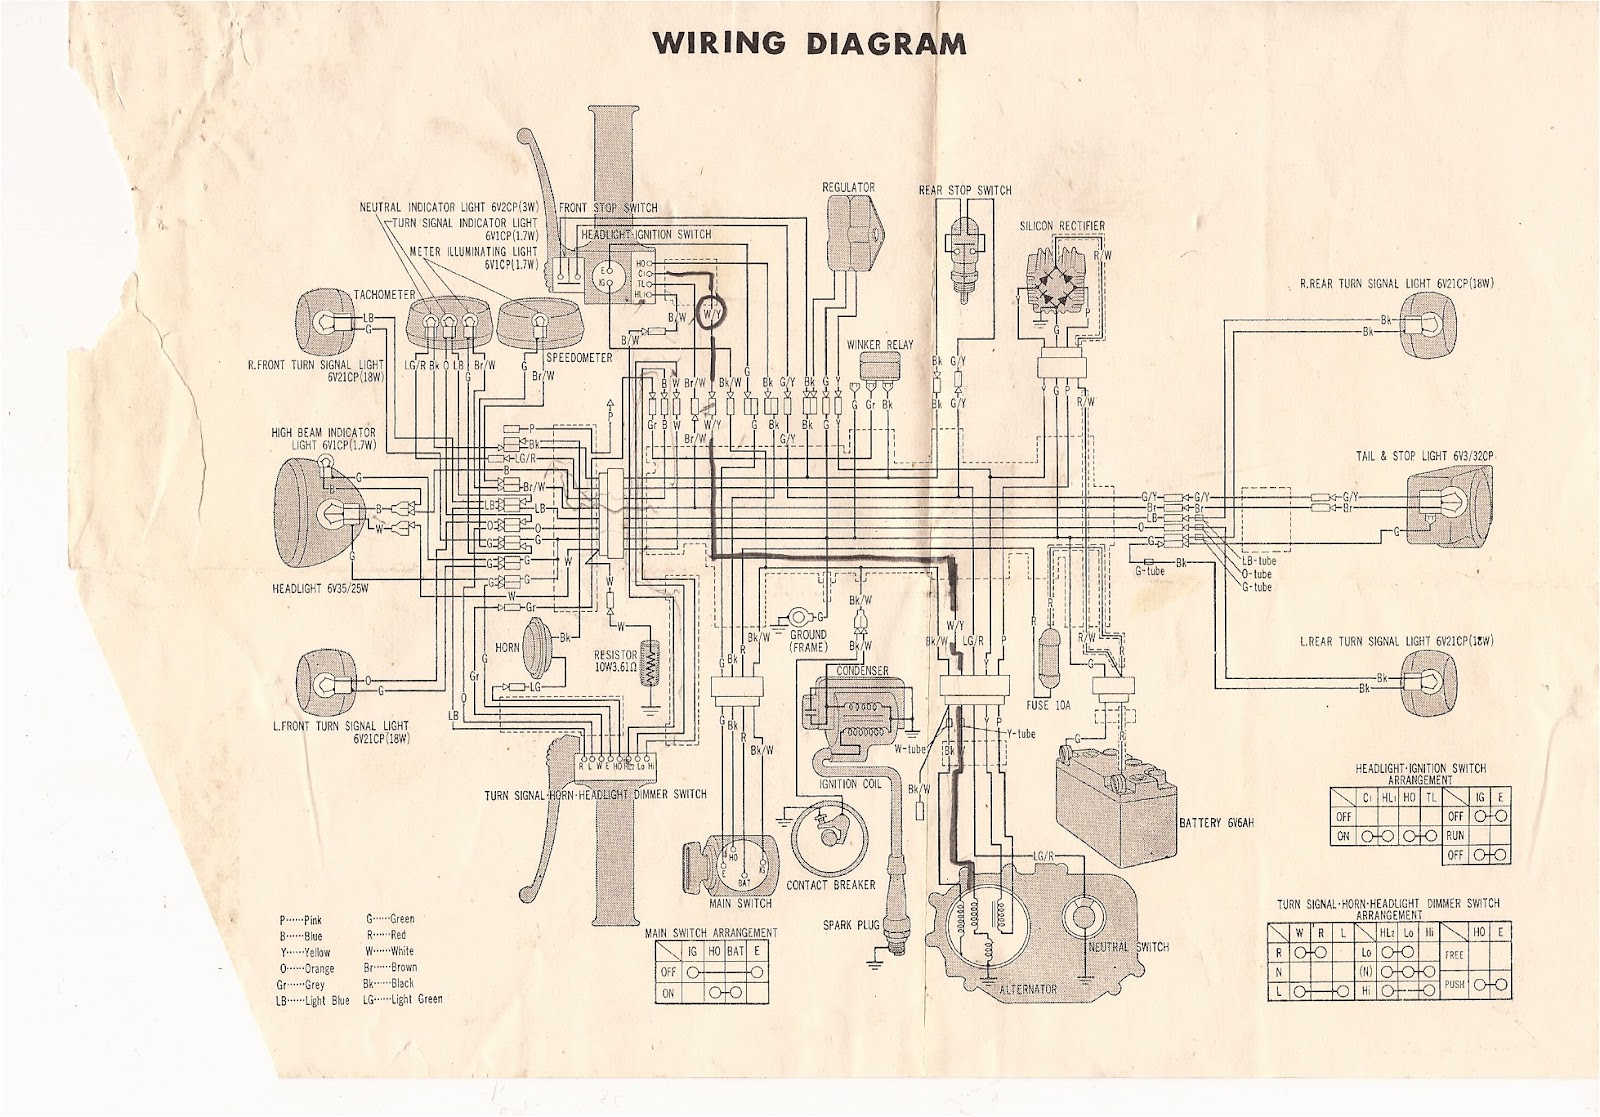 medium resolution of r4l xl350 wiring diagram and xl250 rh ramen4life blogspot com 1979 honda xl250 wiring diagram honda xr 250 wiring diagram